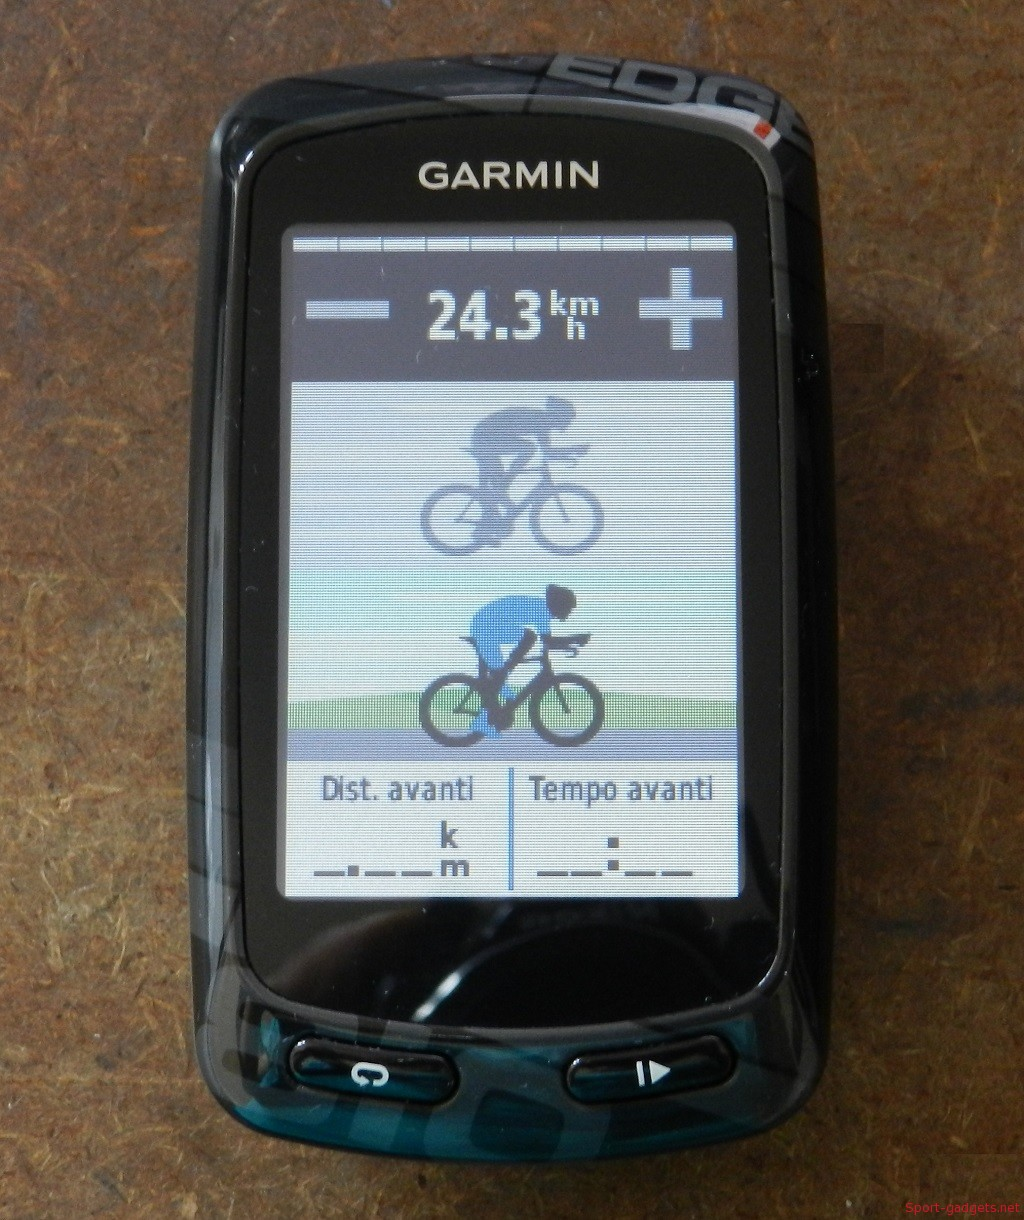 garmin edge 810 virtual partner